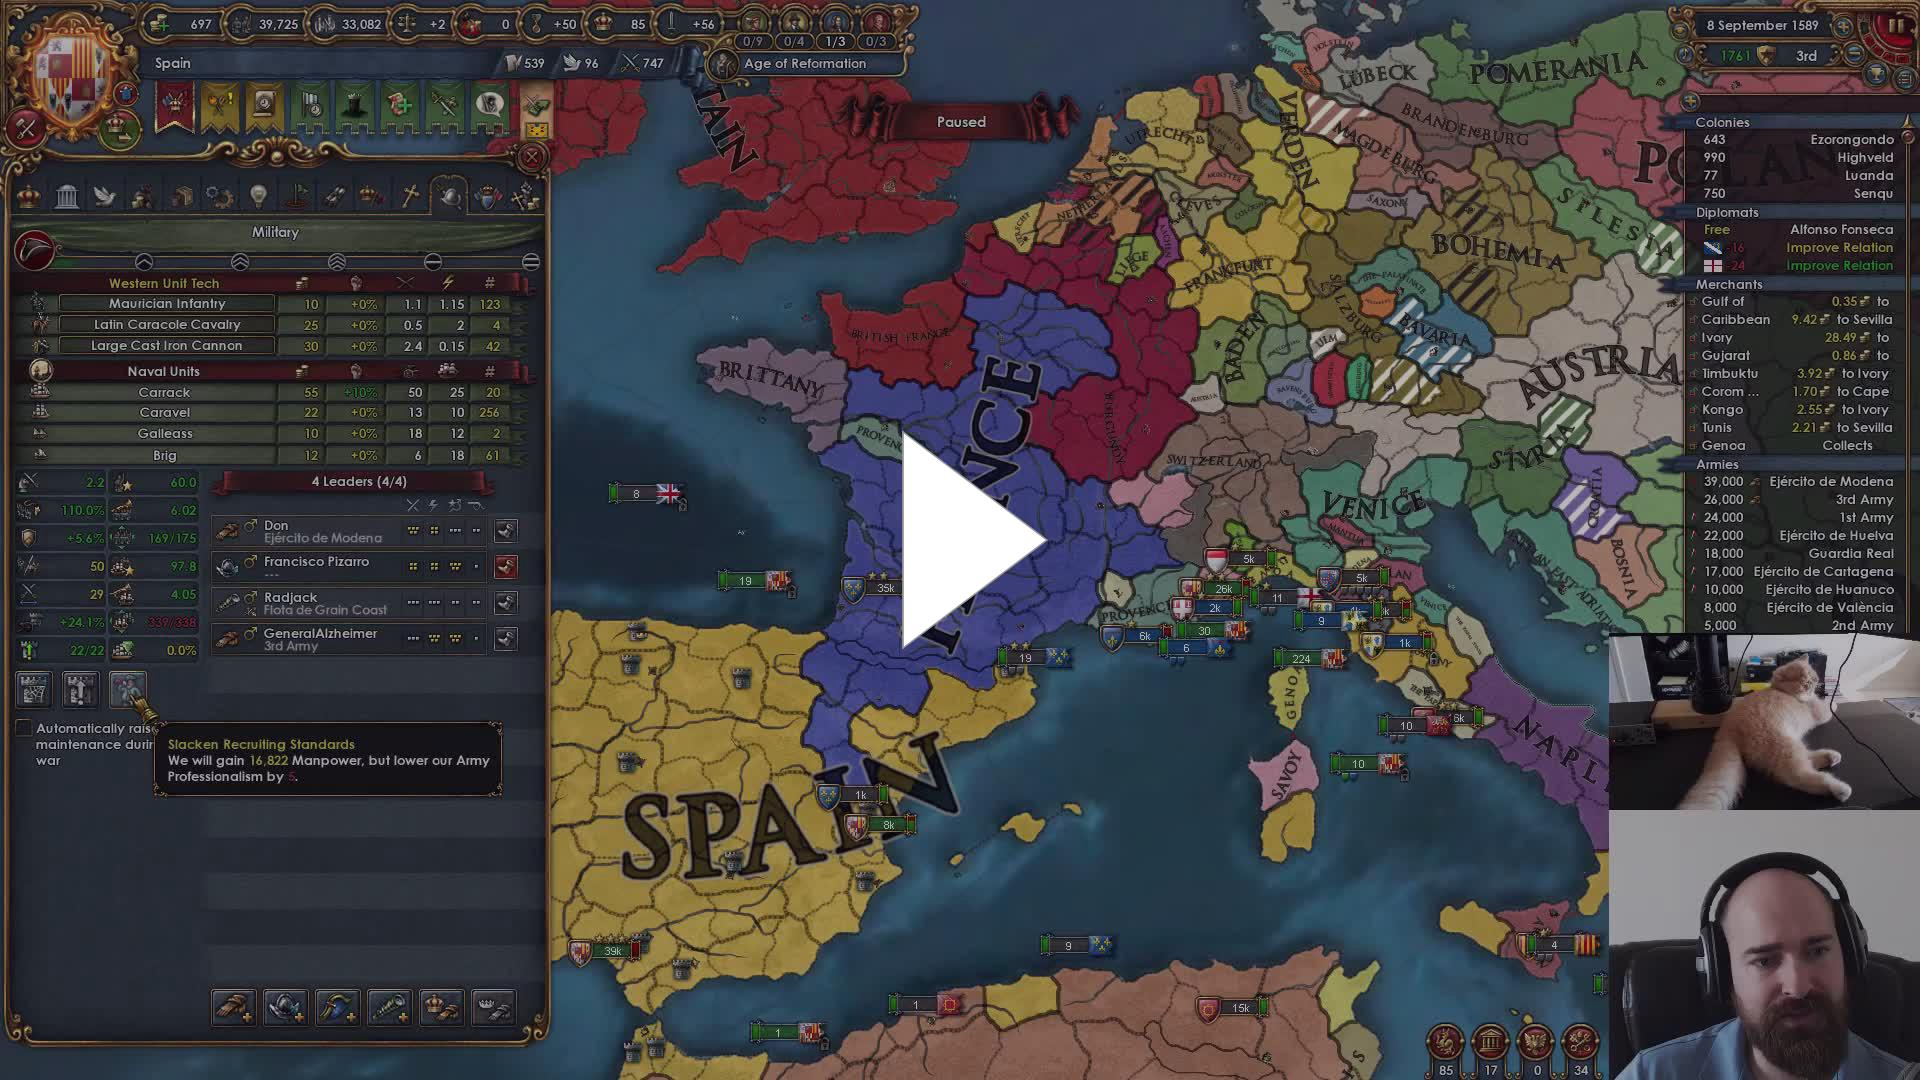 Arumba07 - (May 22) (EU4) Asturias (Now Spain) - Where has